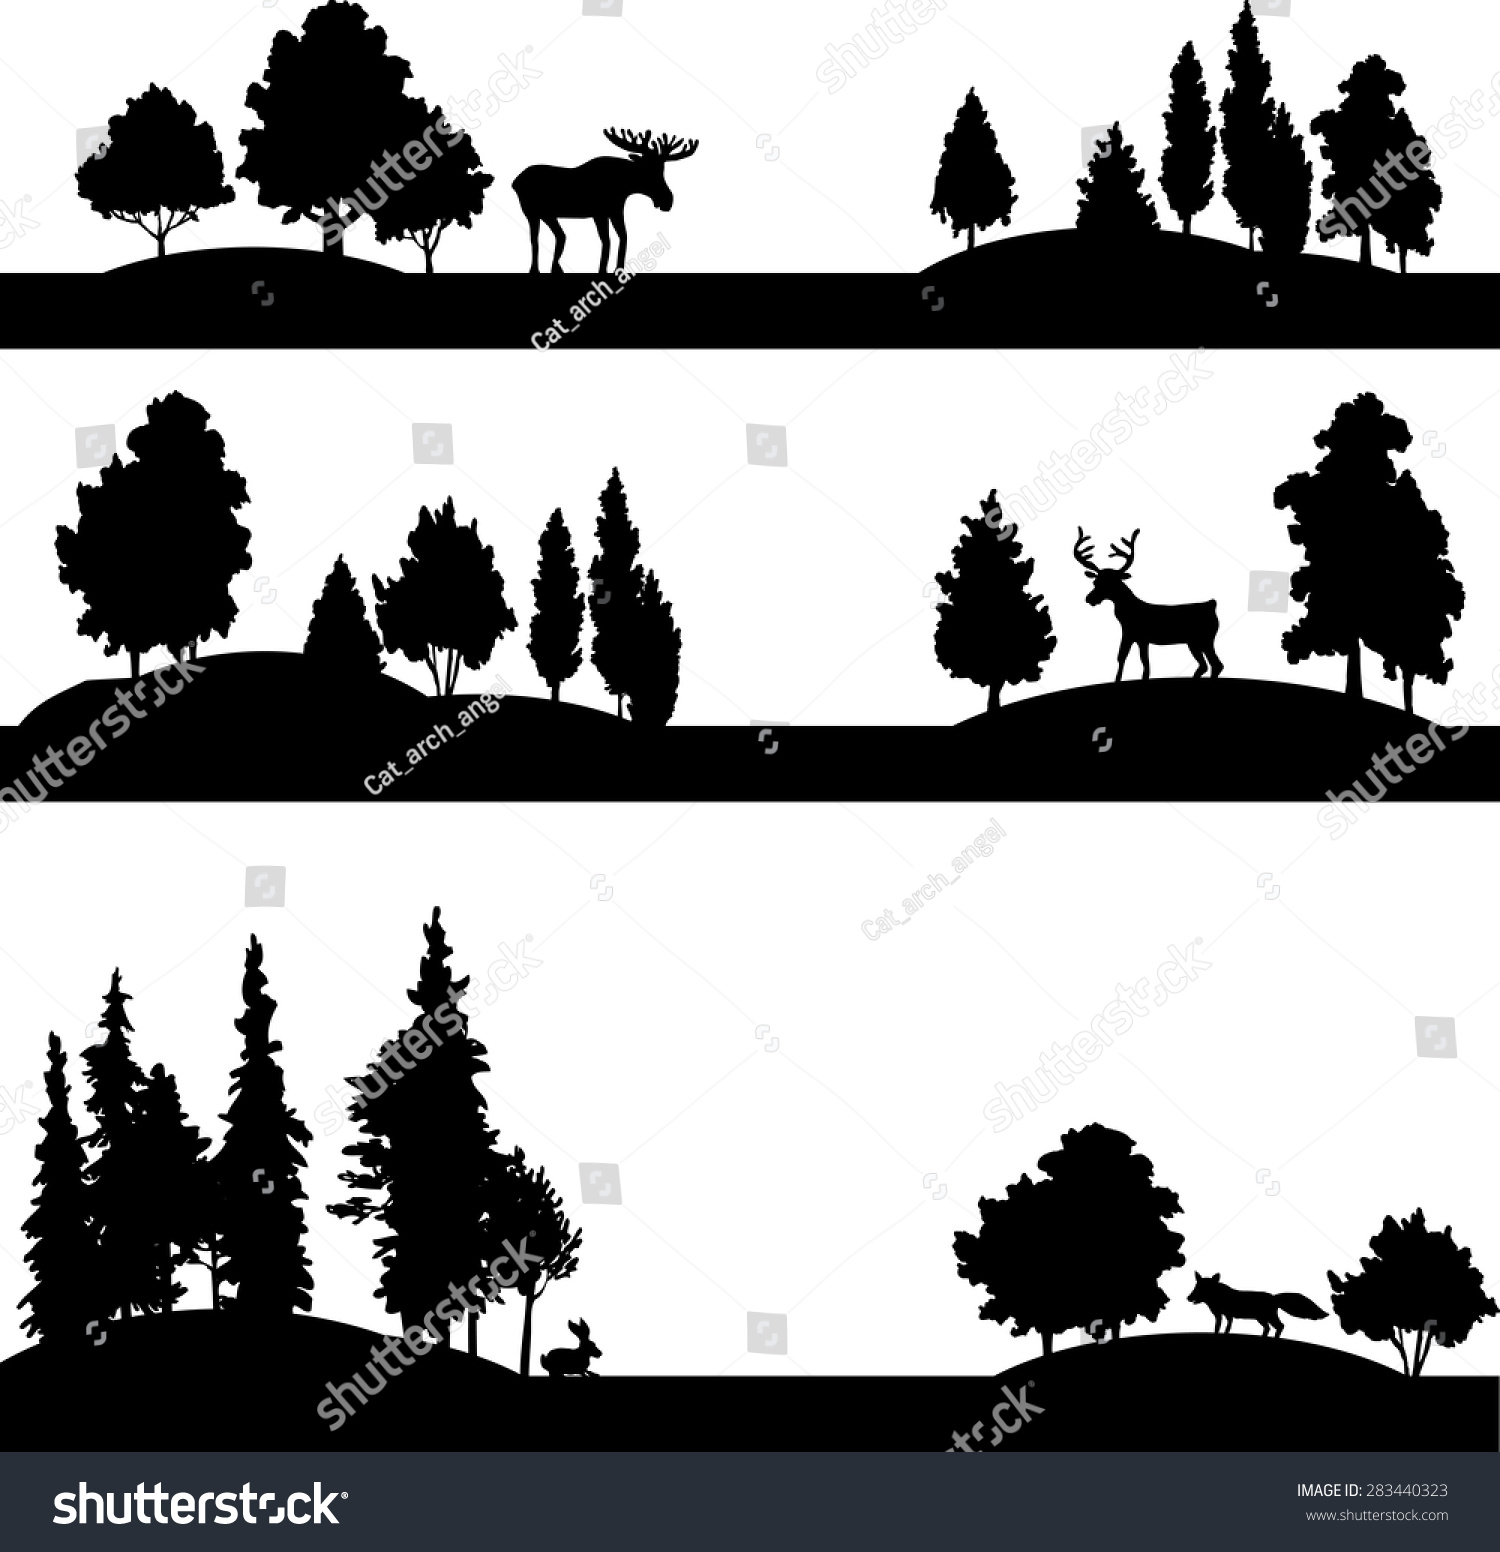 set of different landscapes with deciduous trees coniferous trees and wild animals silhouettes forest with elk deer fox and rabbit hand drawn vector illustration